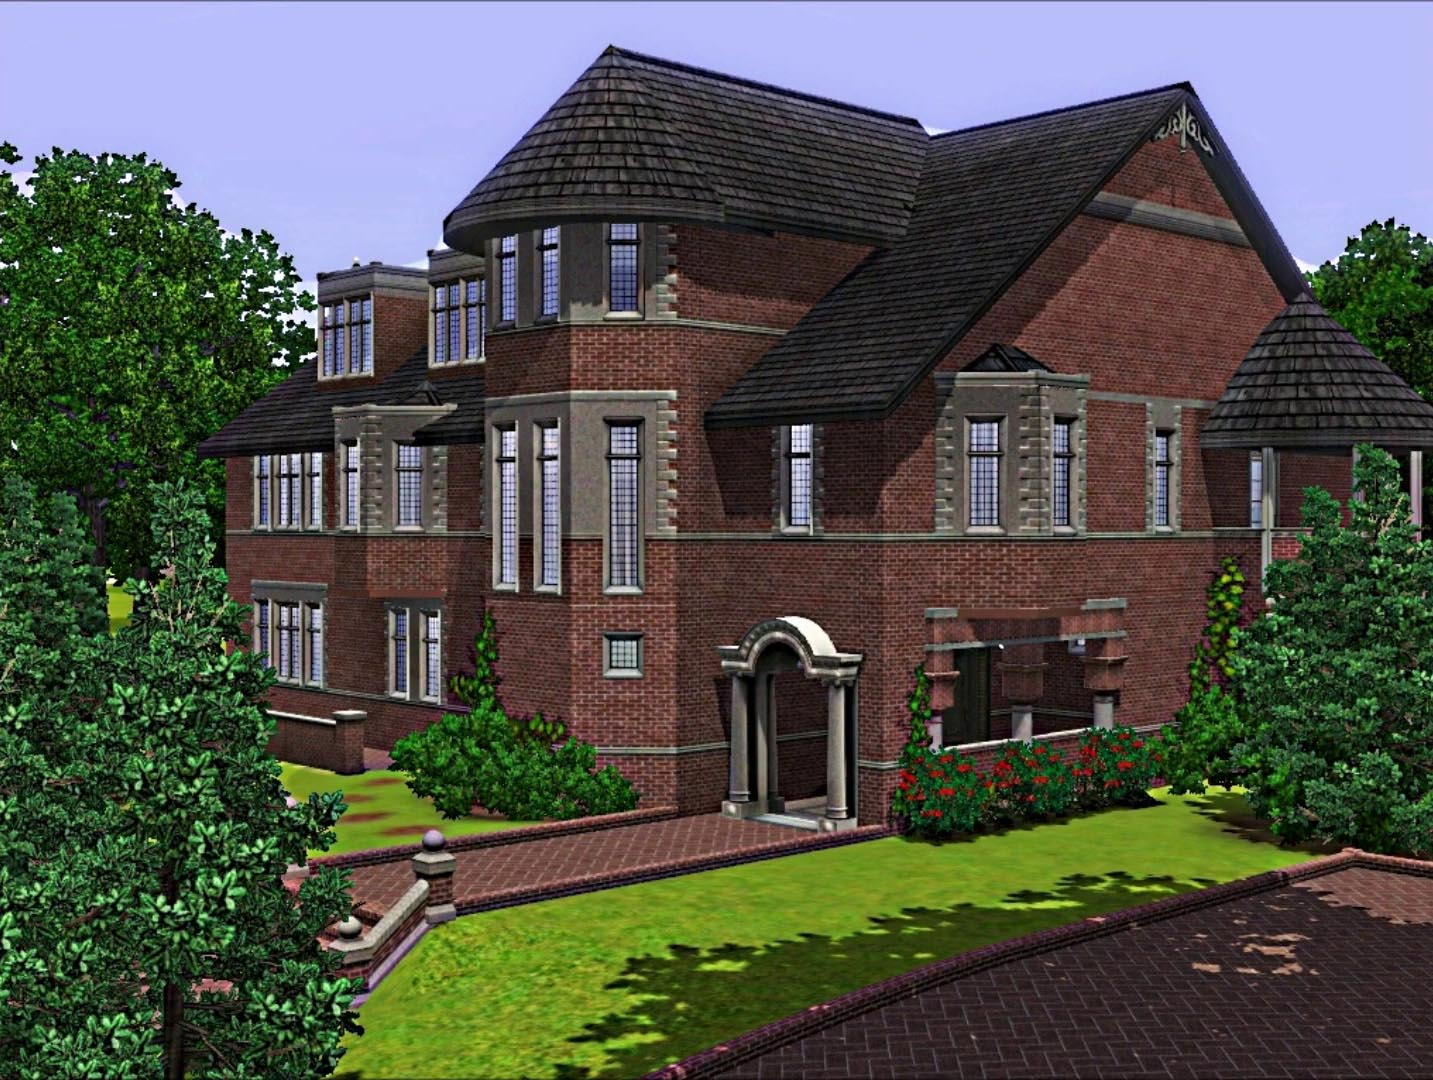 My Sims 3 Blog: American Horror Story House By Wisteriabrayan